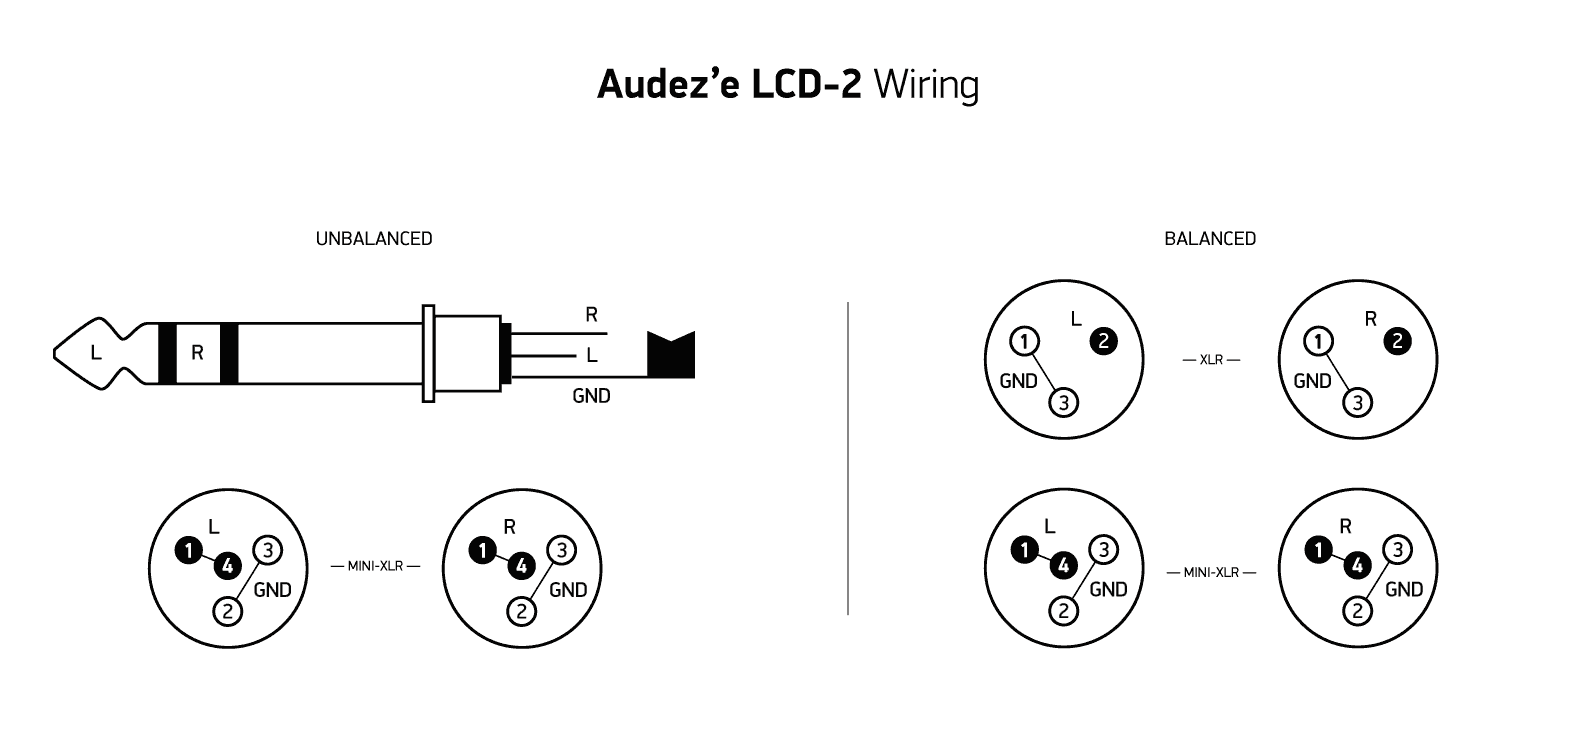 trs cable wiring diagram audeze 4 pin mini xlr to trs wiring help headphone reviews and  audeze 4 pin mini xlr to trs wiring